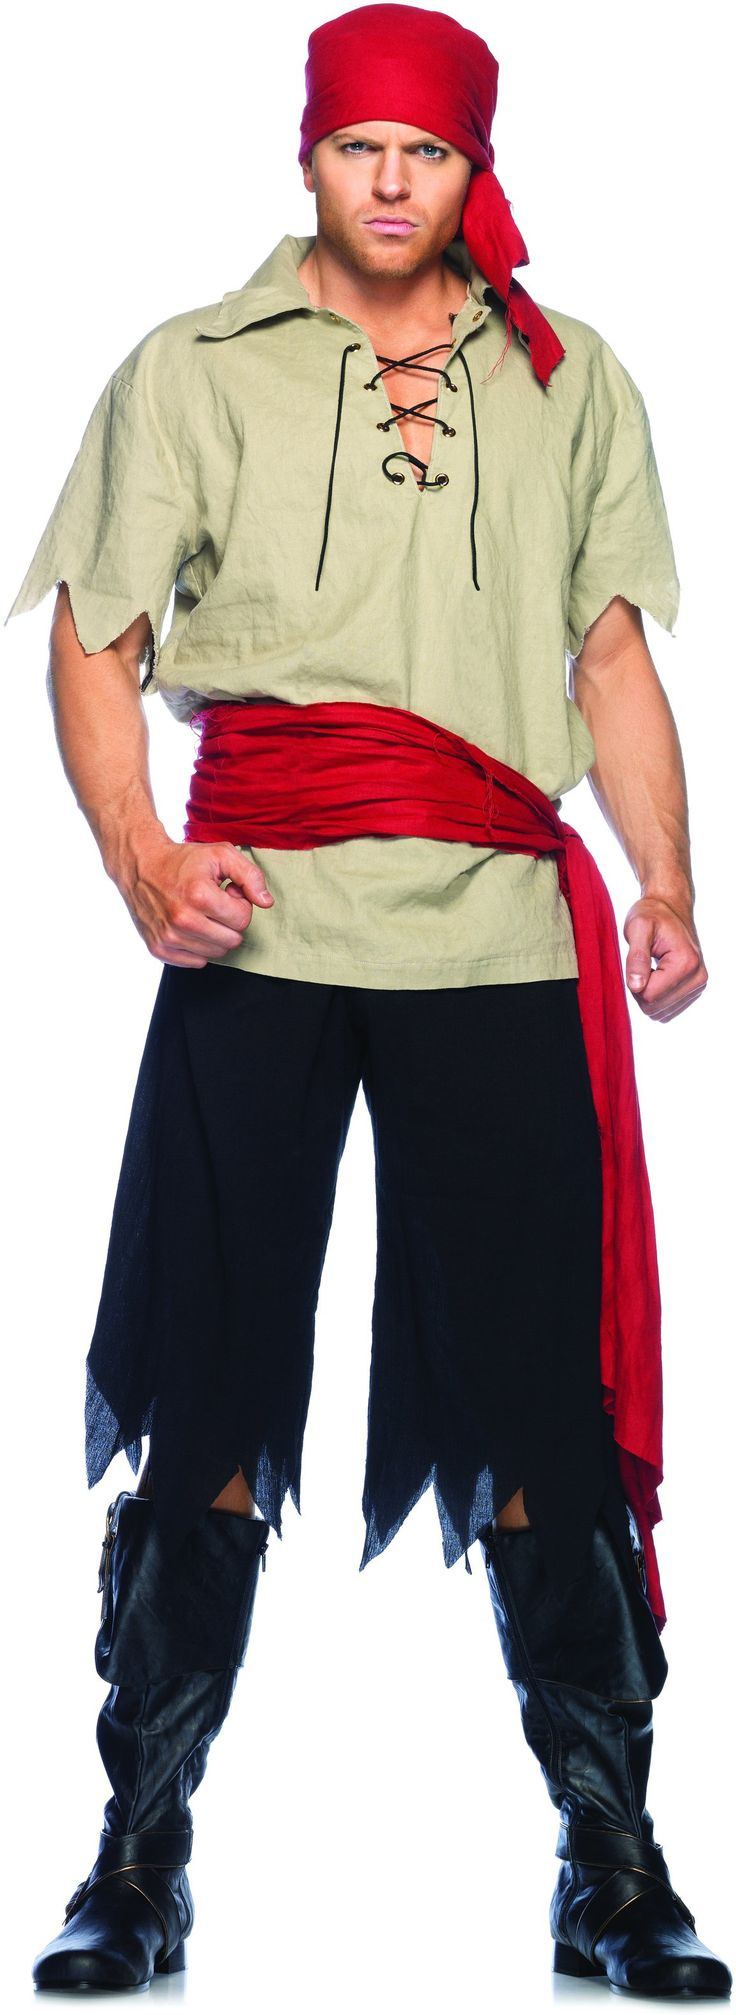 Cut Throat Pirate Adult Costume from BuyCostumes.com